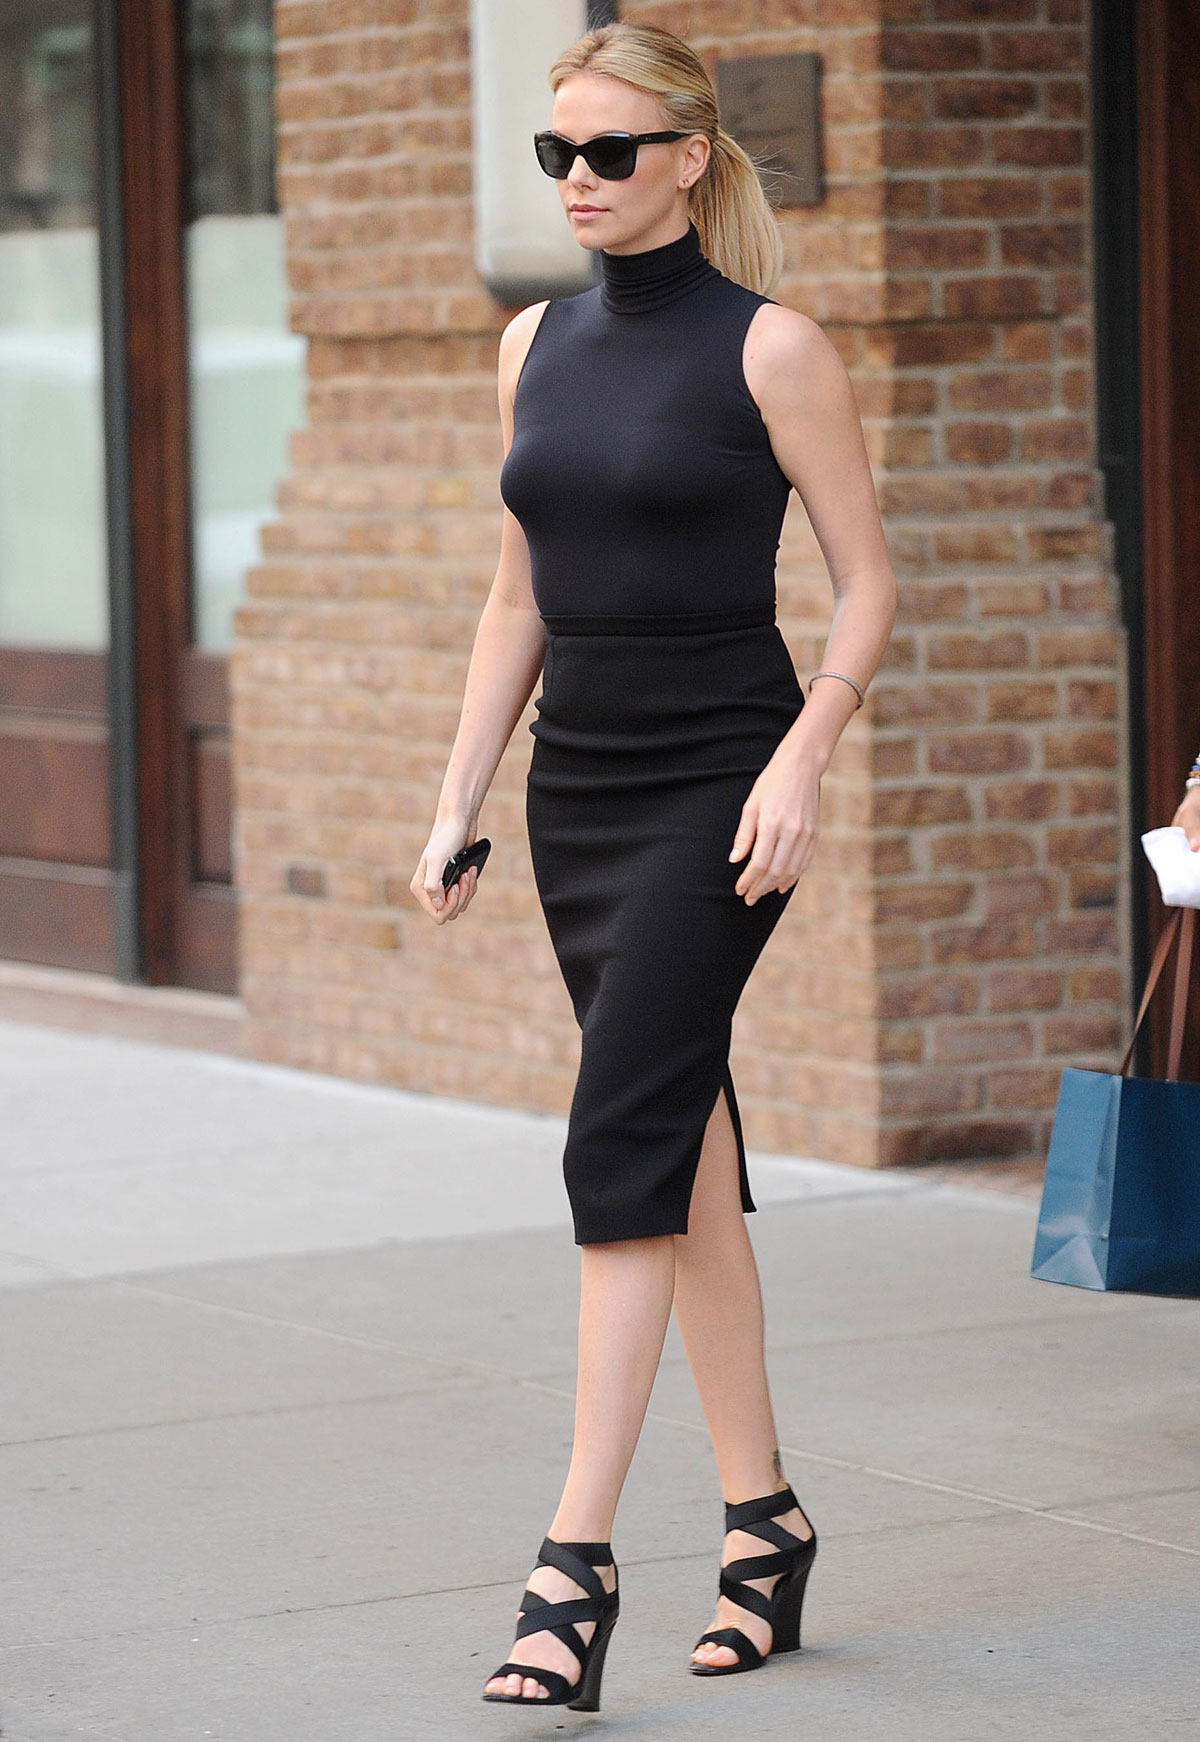 Charlize Theron Leaving Nbc Studios In New York Hawtcelebs